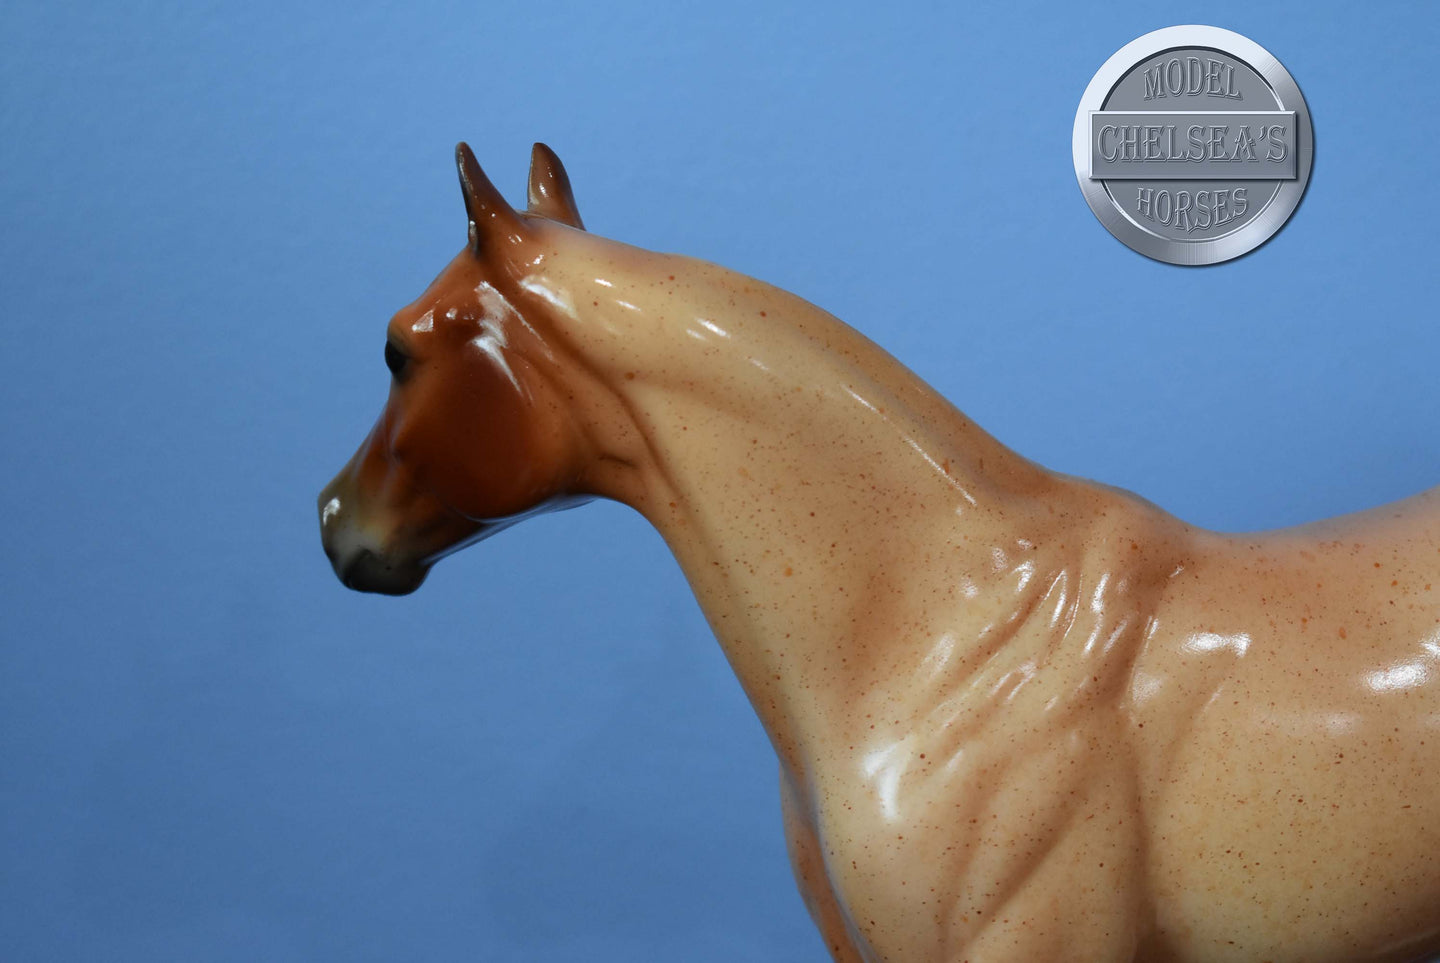 Amber and Ashley-Original Release Pair-Breyer Traditional